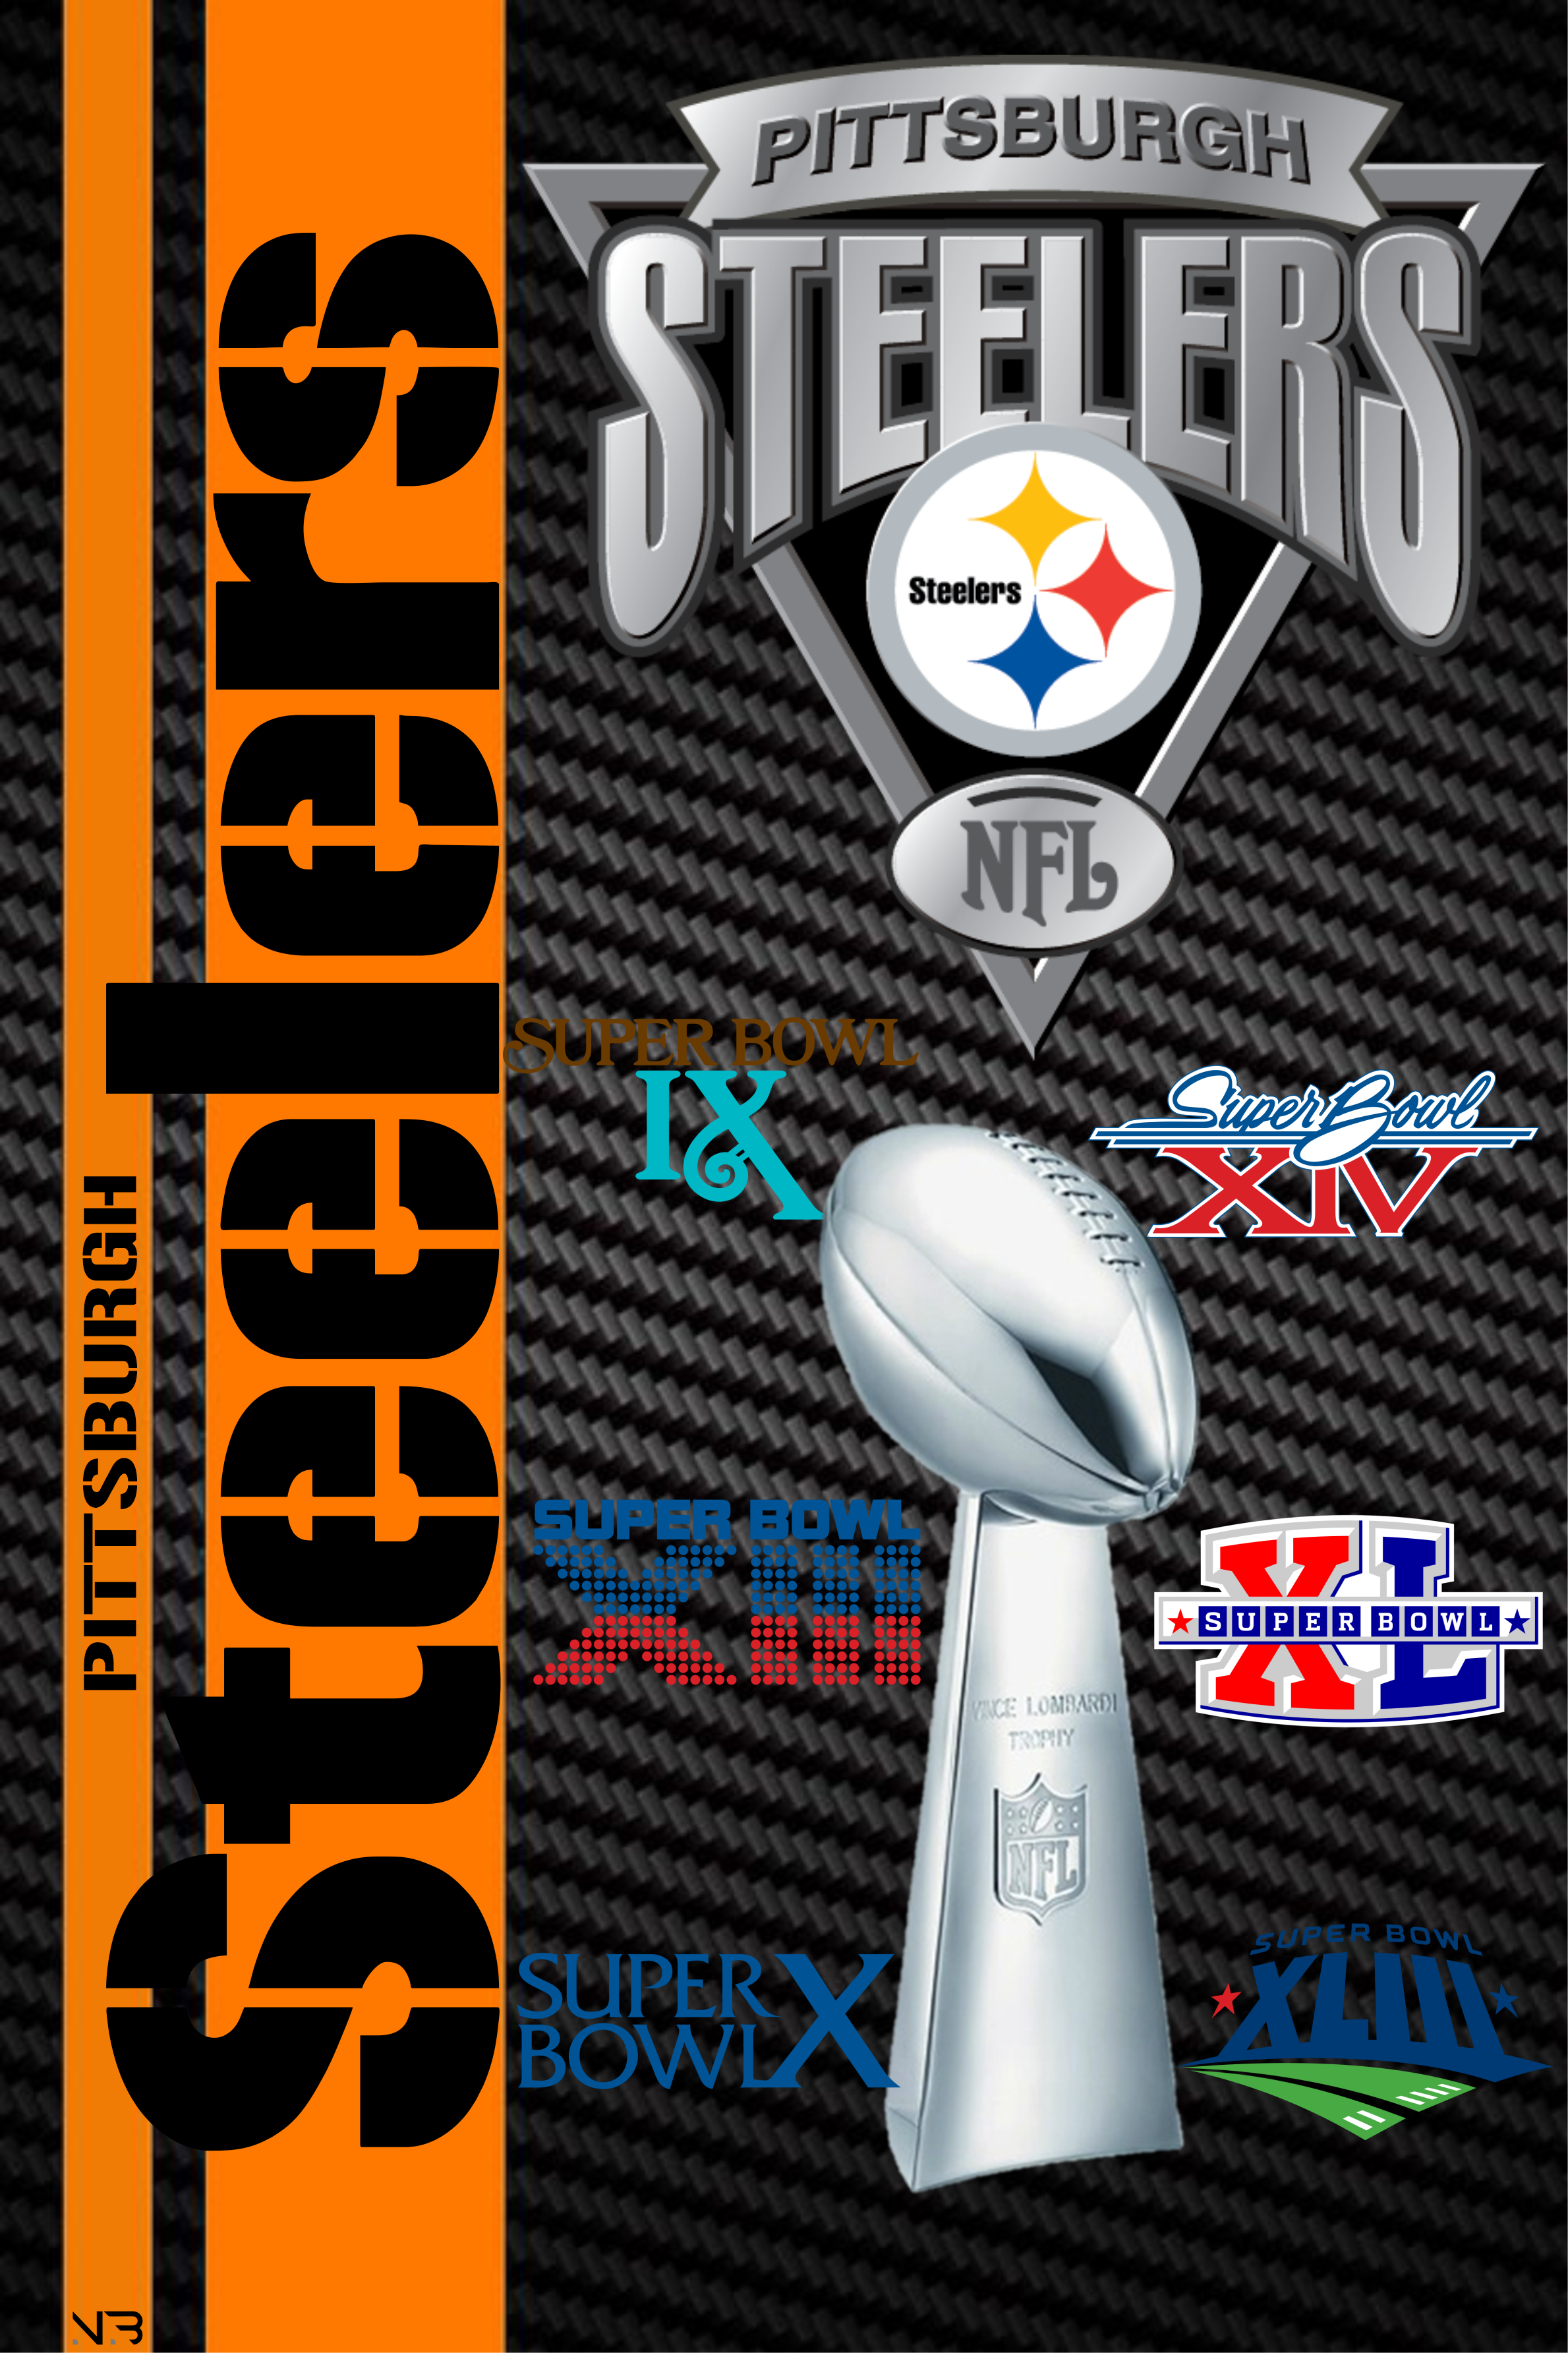 Pin By Jonathan On Bubbles Wallpaper In 2020 Pittsburgh Steelers Football Pittsburgh Steelers Wallpaper Pittsburgh Steelers